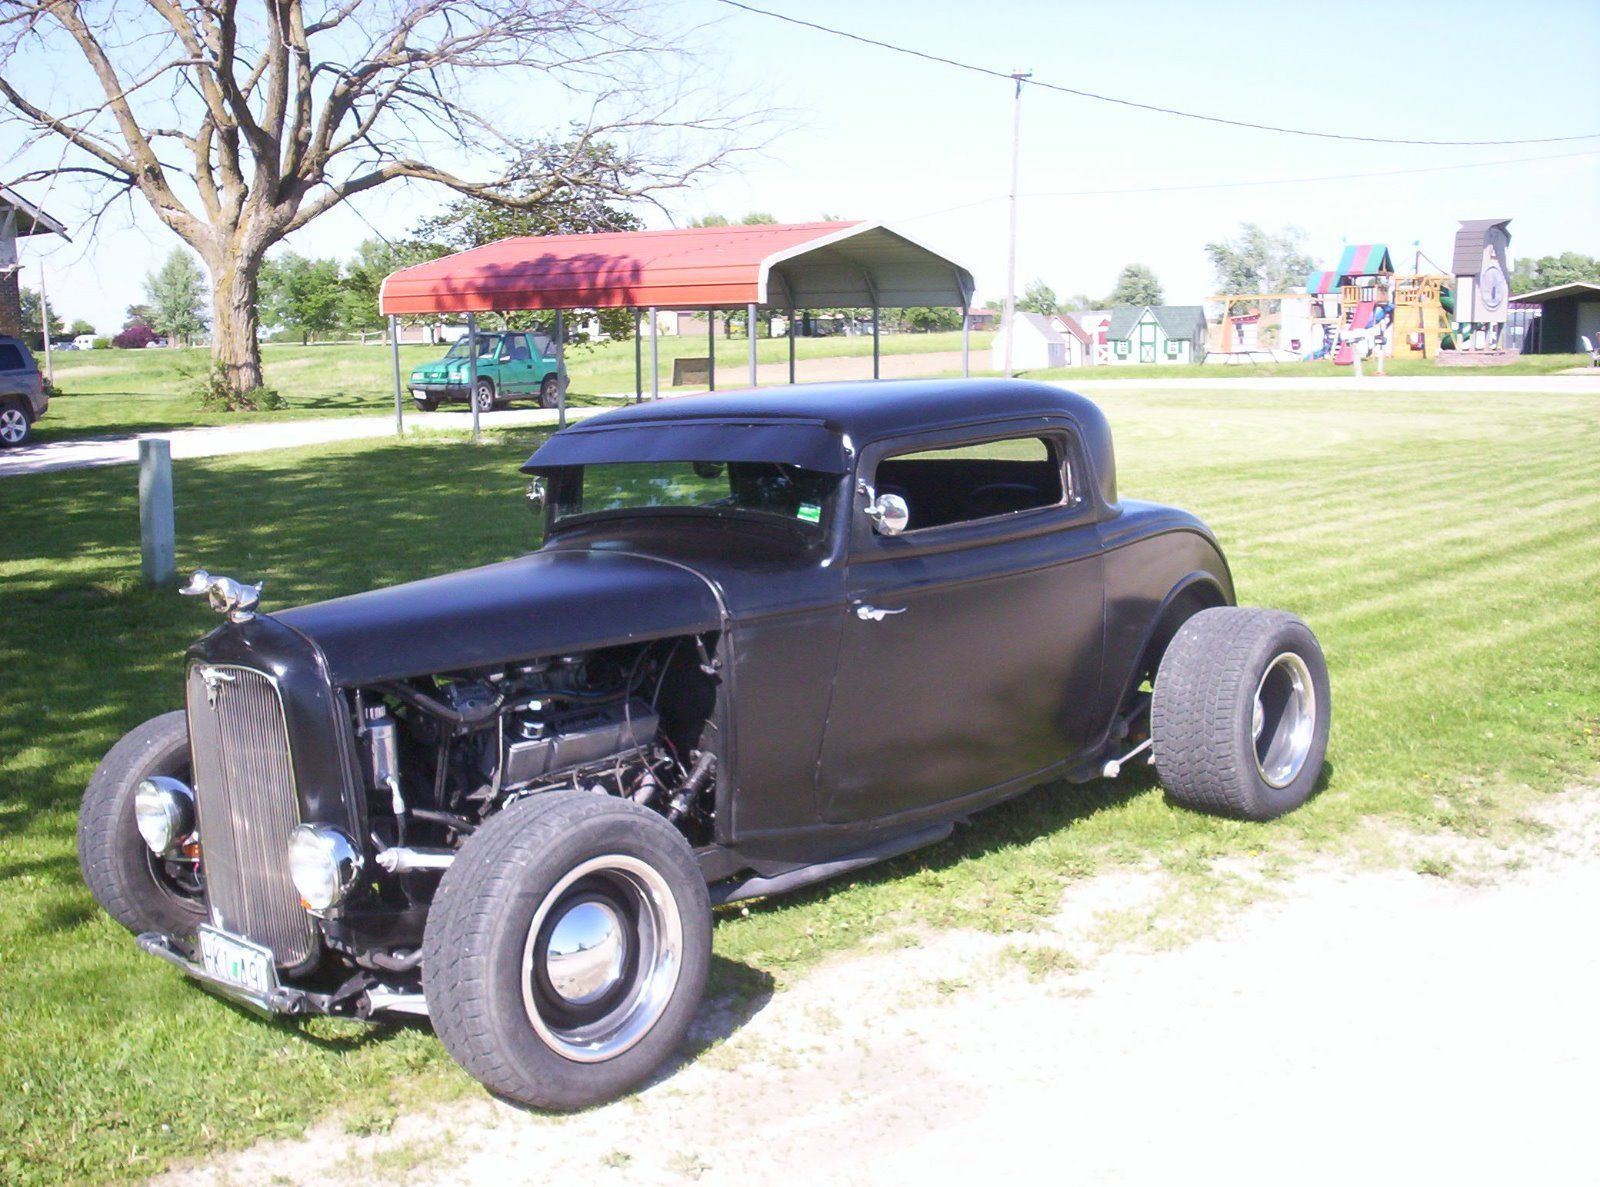 Black beast 1932 Ford coupe hot rod | Hot rods for sale | Pinterest ...